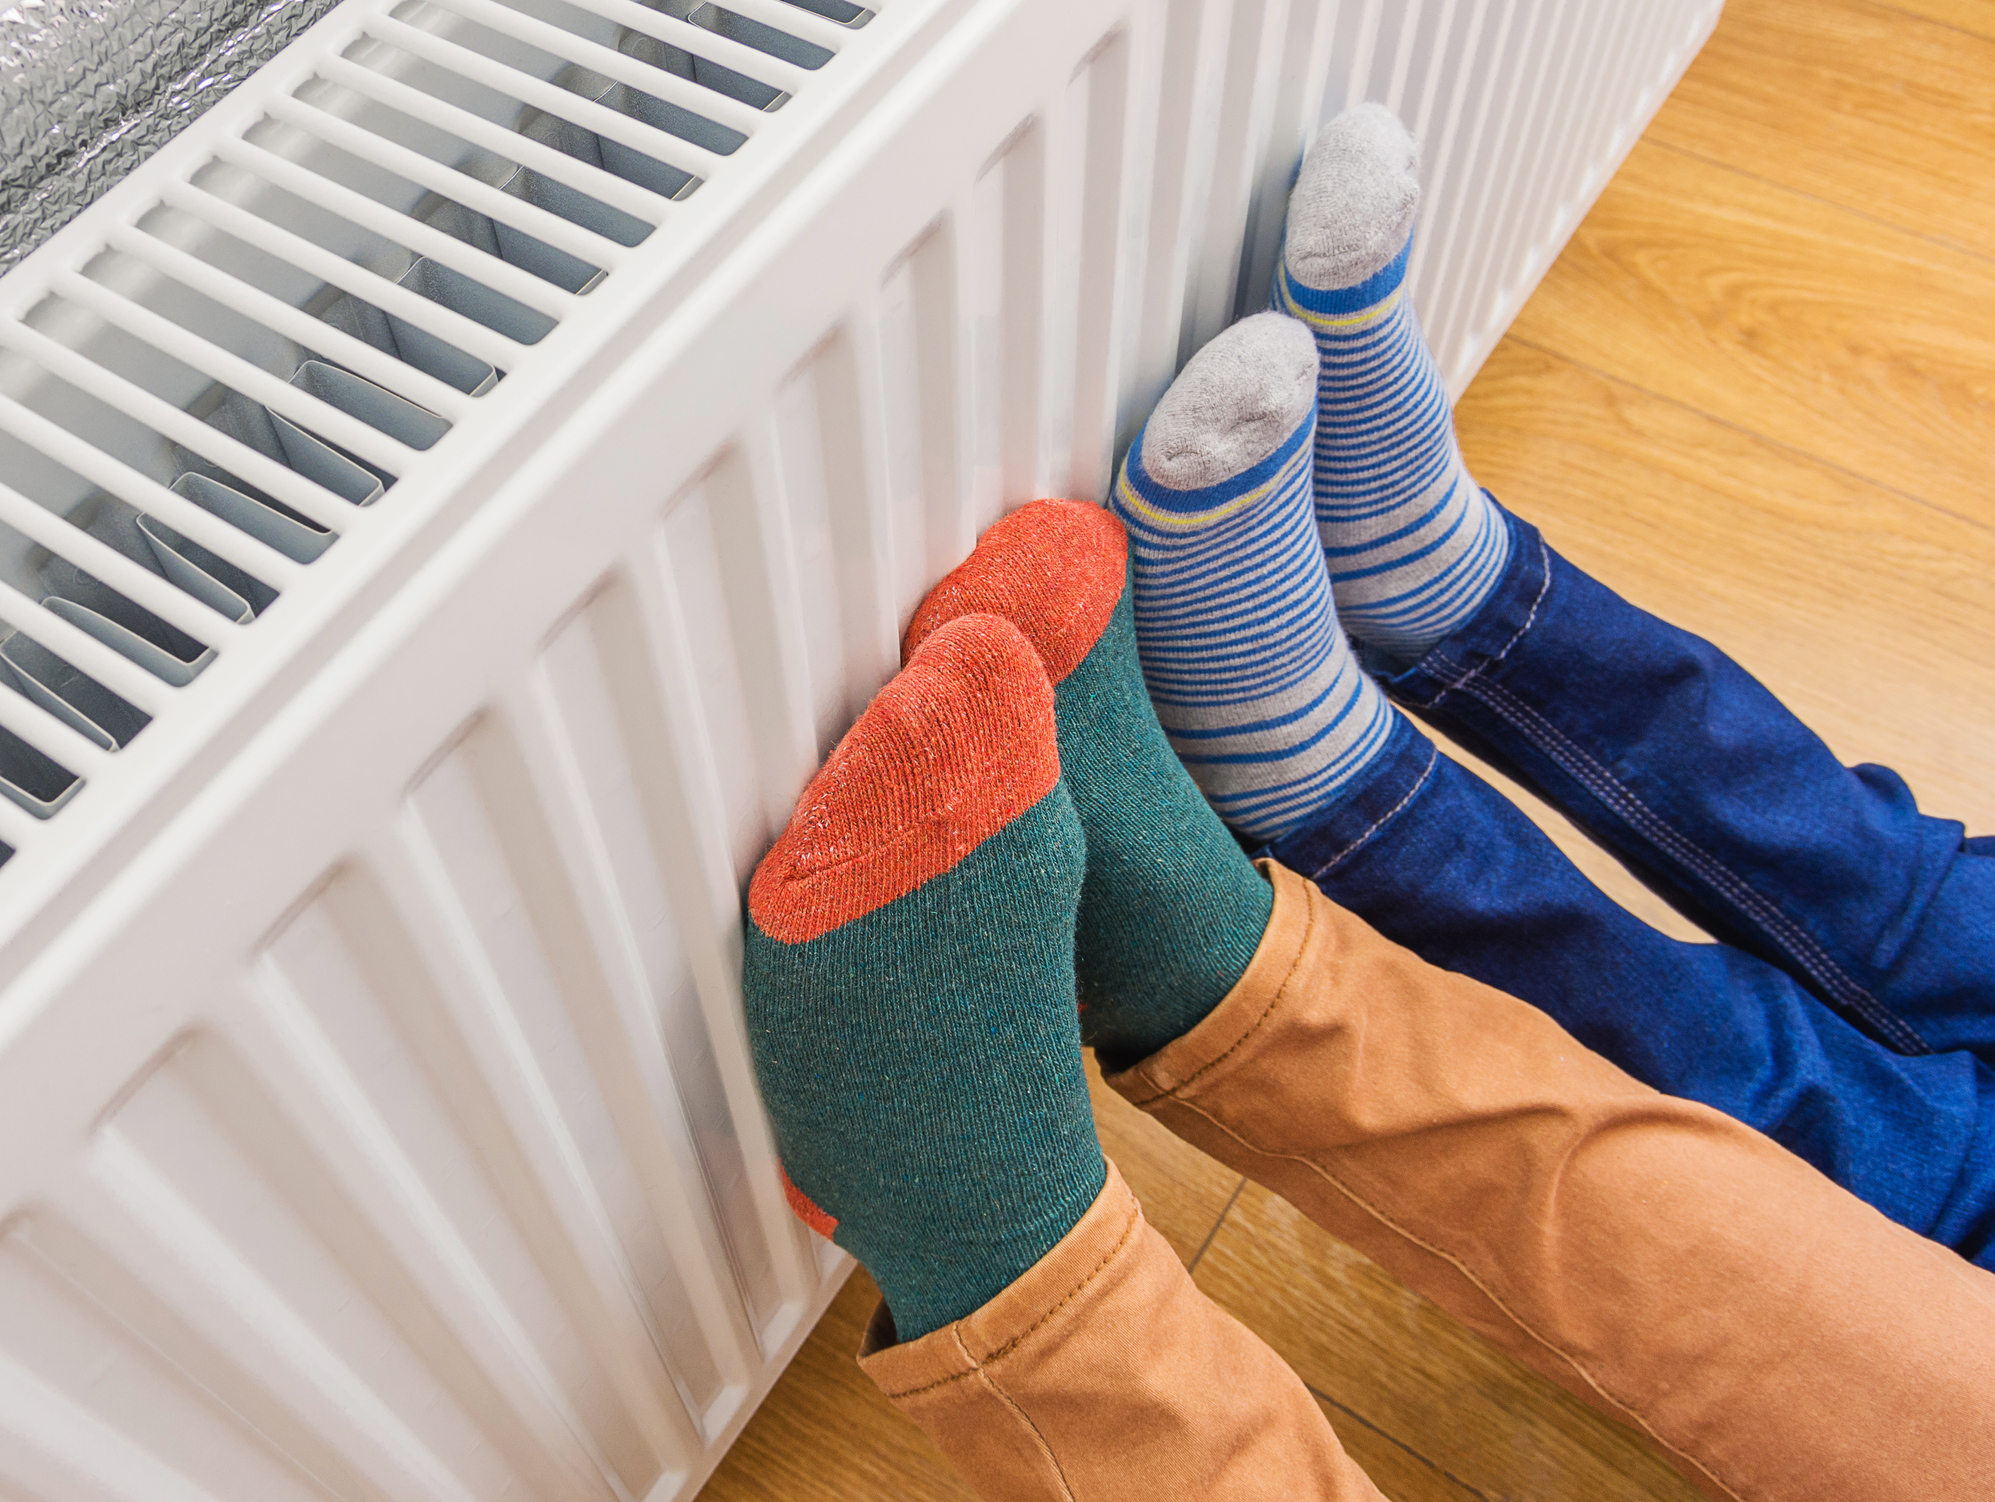 2 pairs of feet getting warm from a radiator